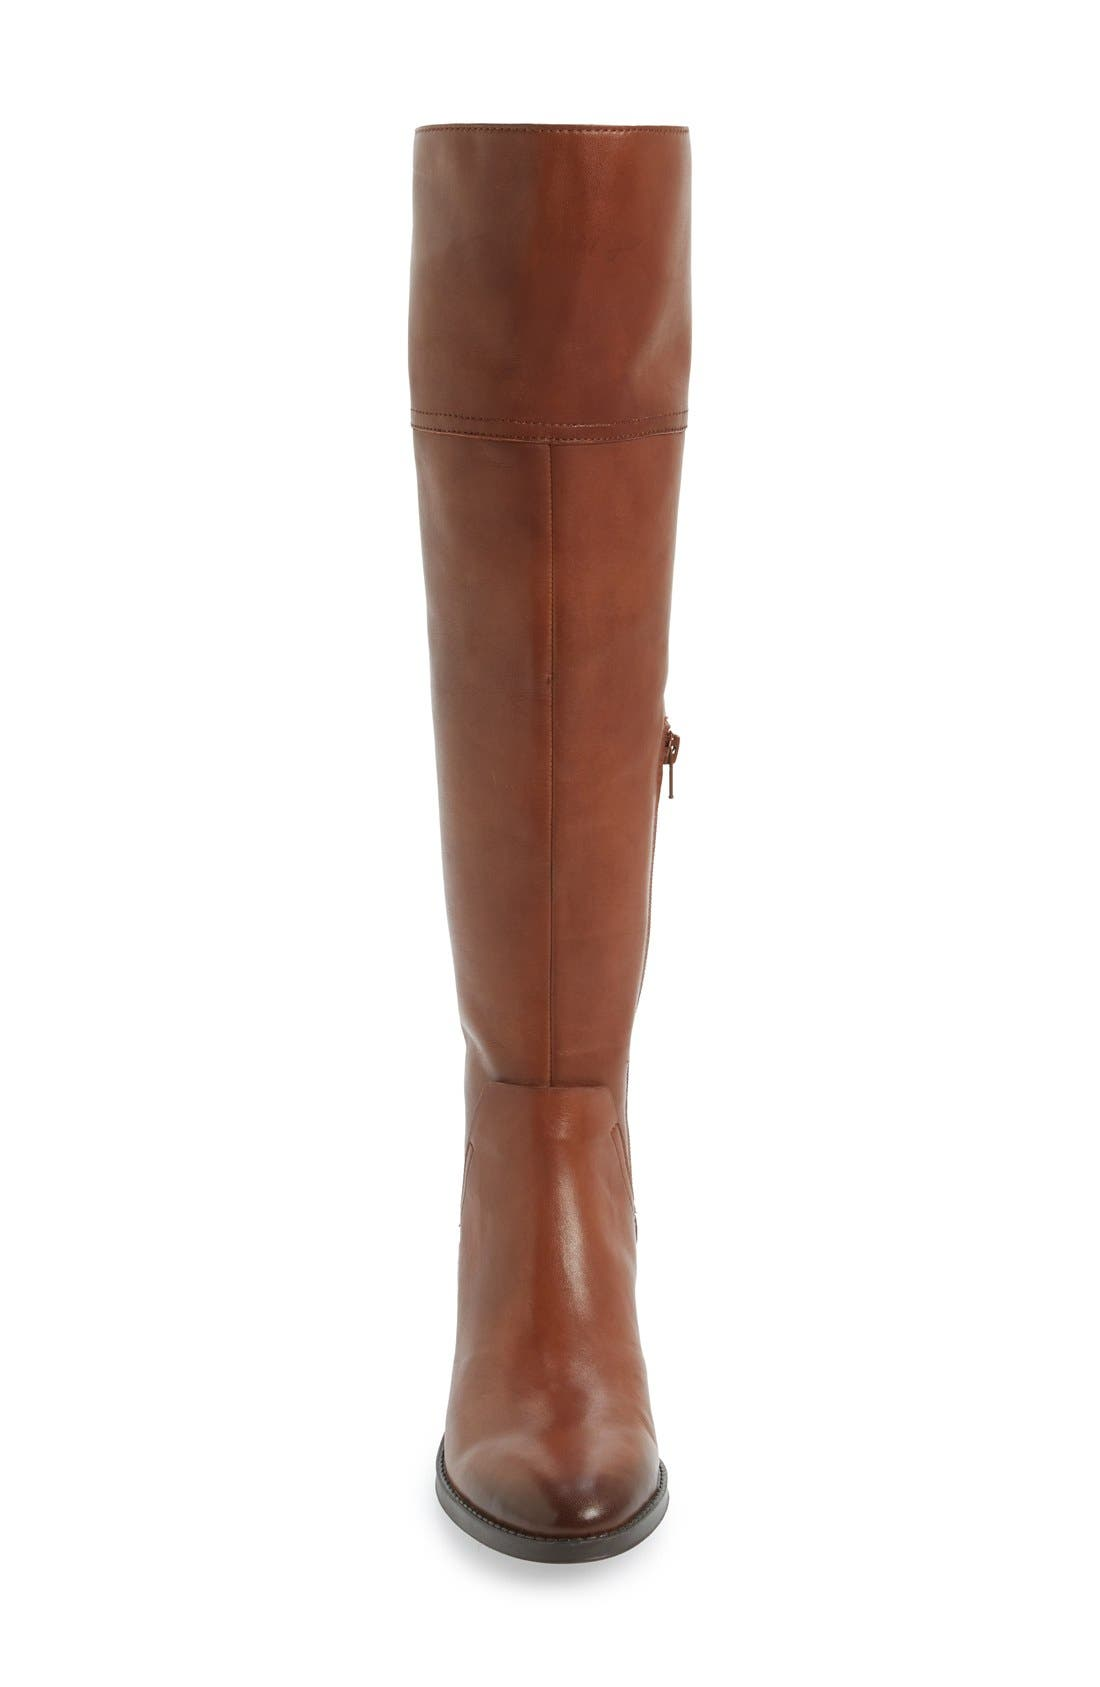 Alternate Image 3  - Vince Camuto 'Pedra' Wide Calf Over the Knee Boot (Women)